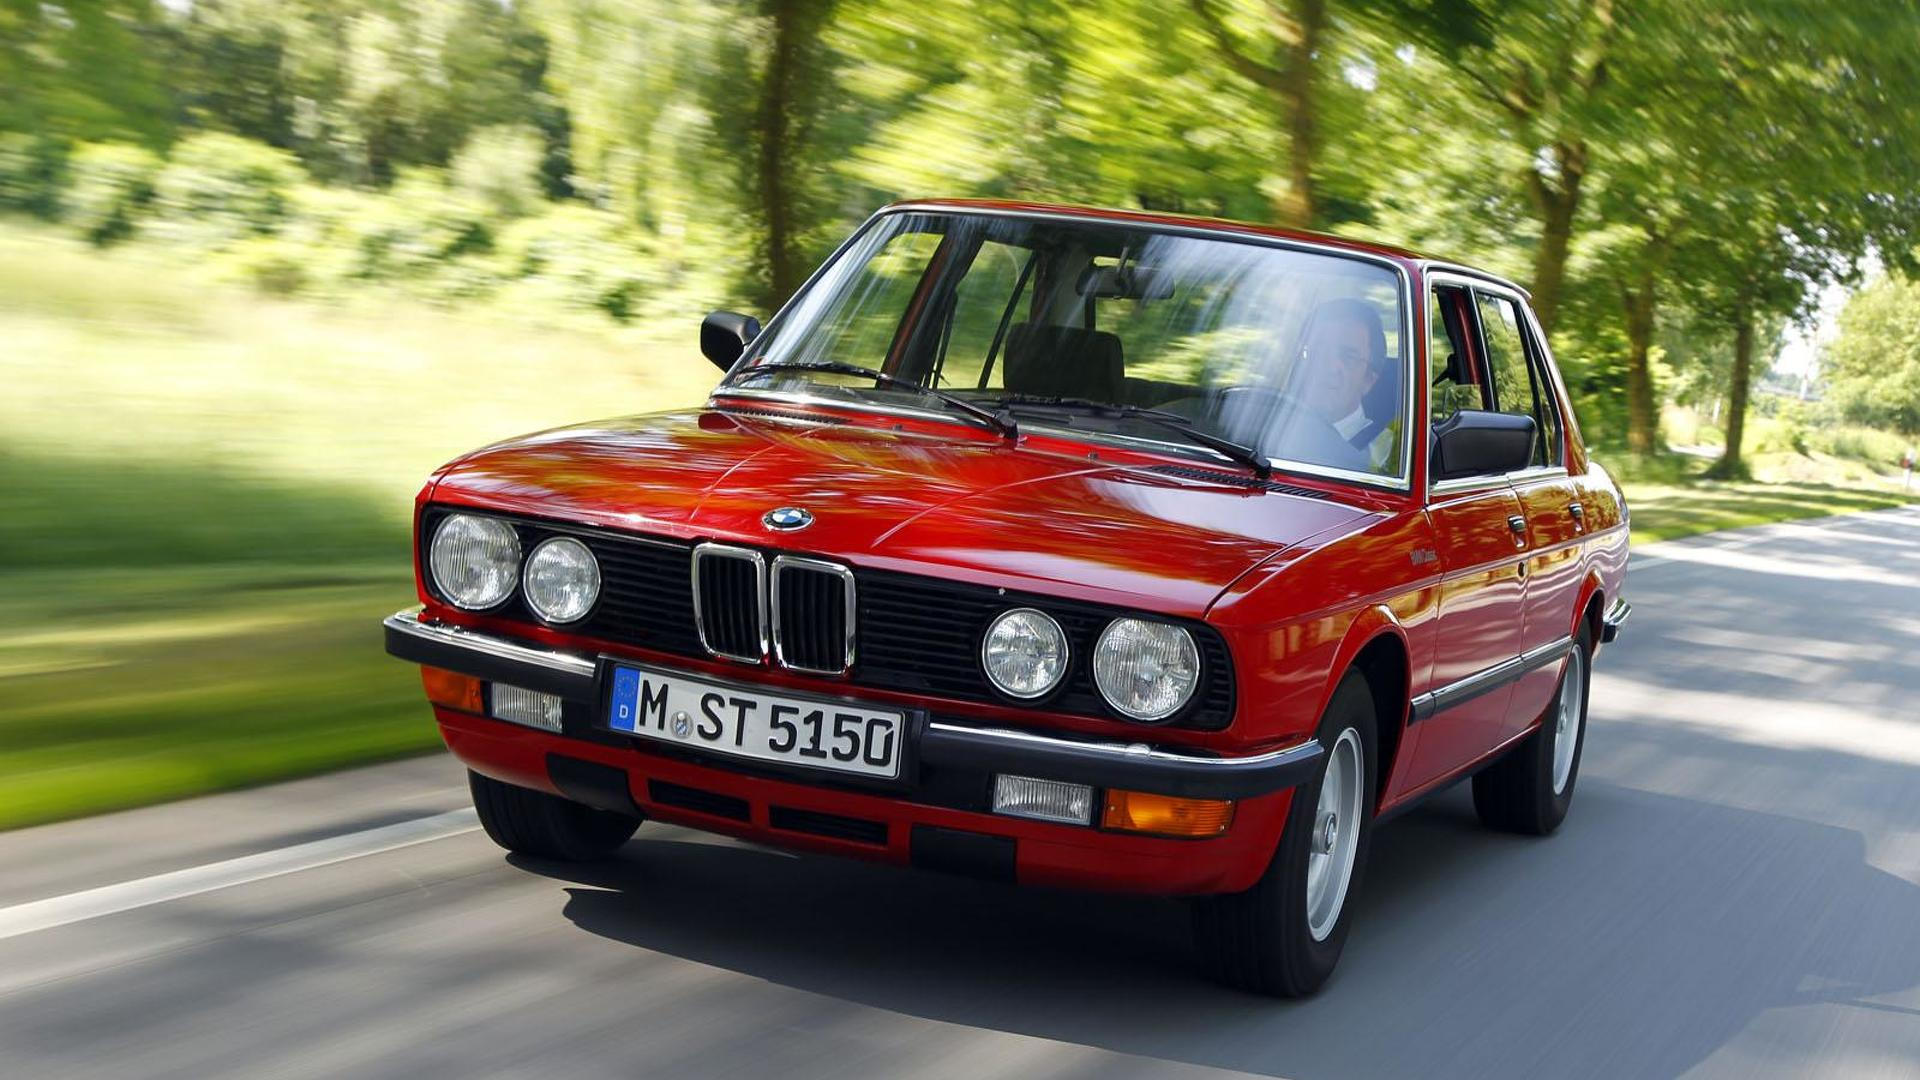 BMW celebrates 30 years of diesel engines